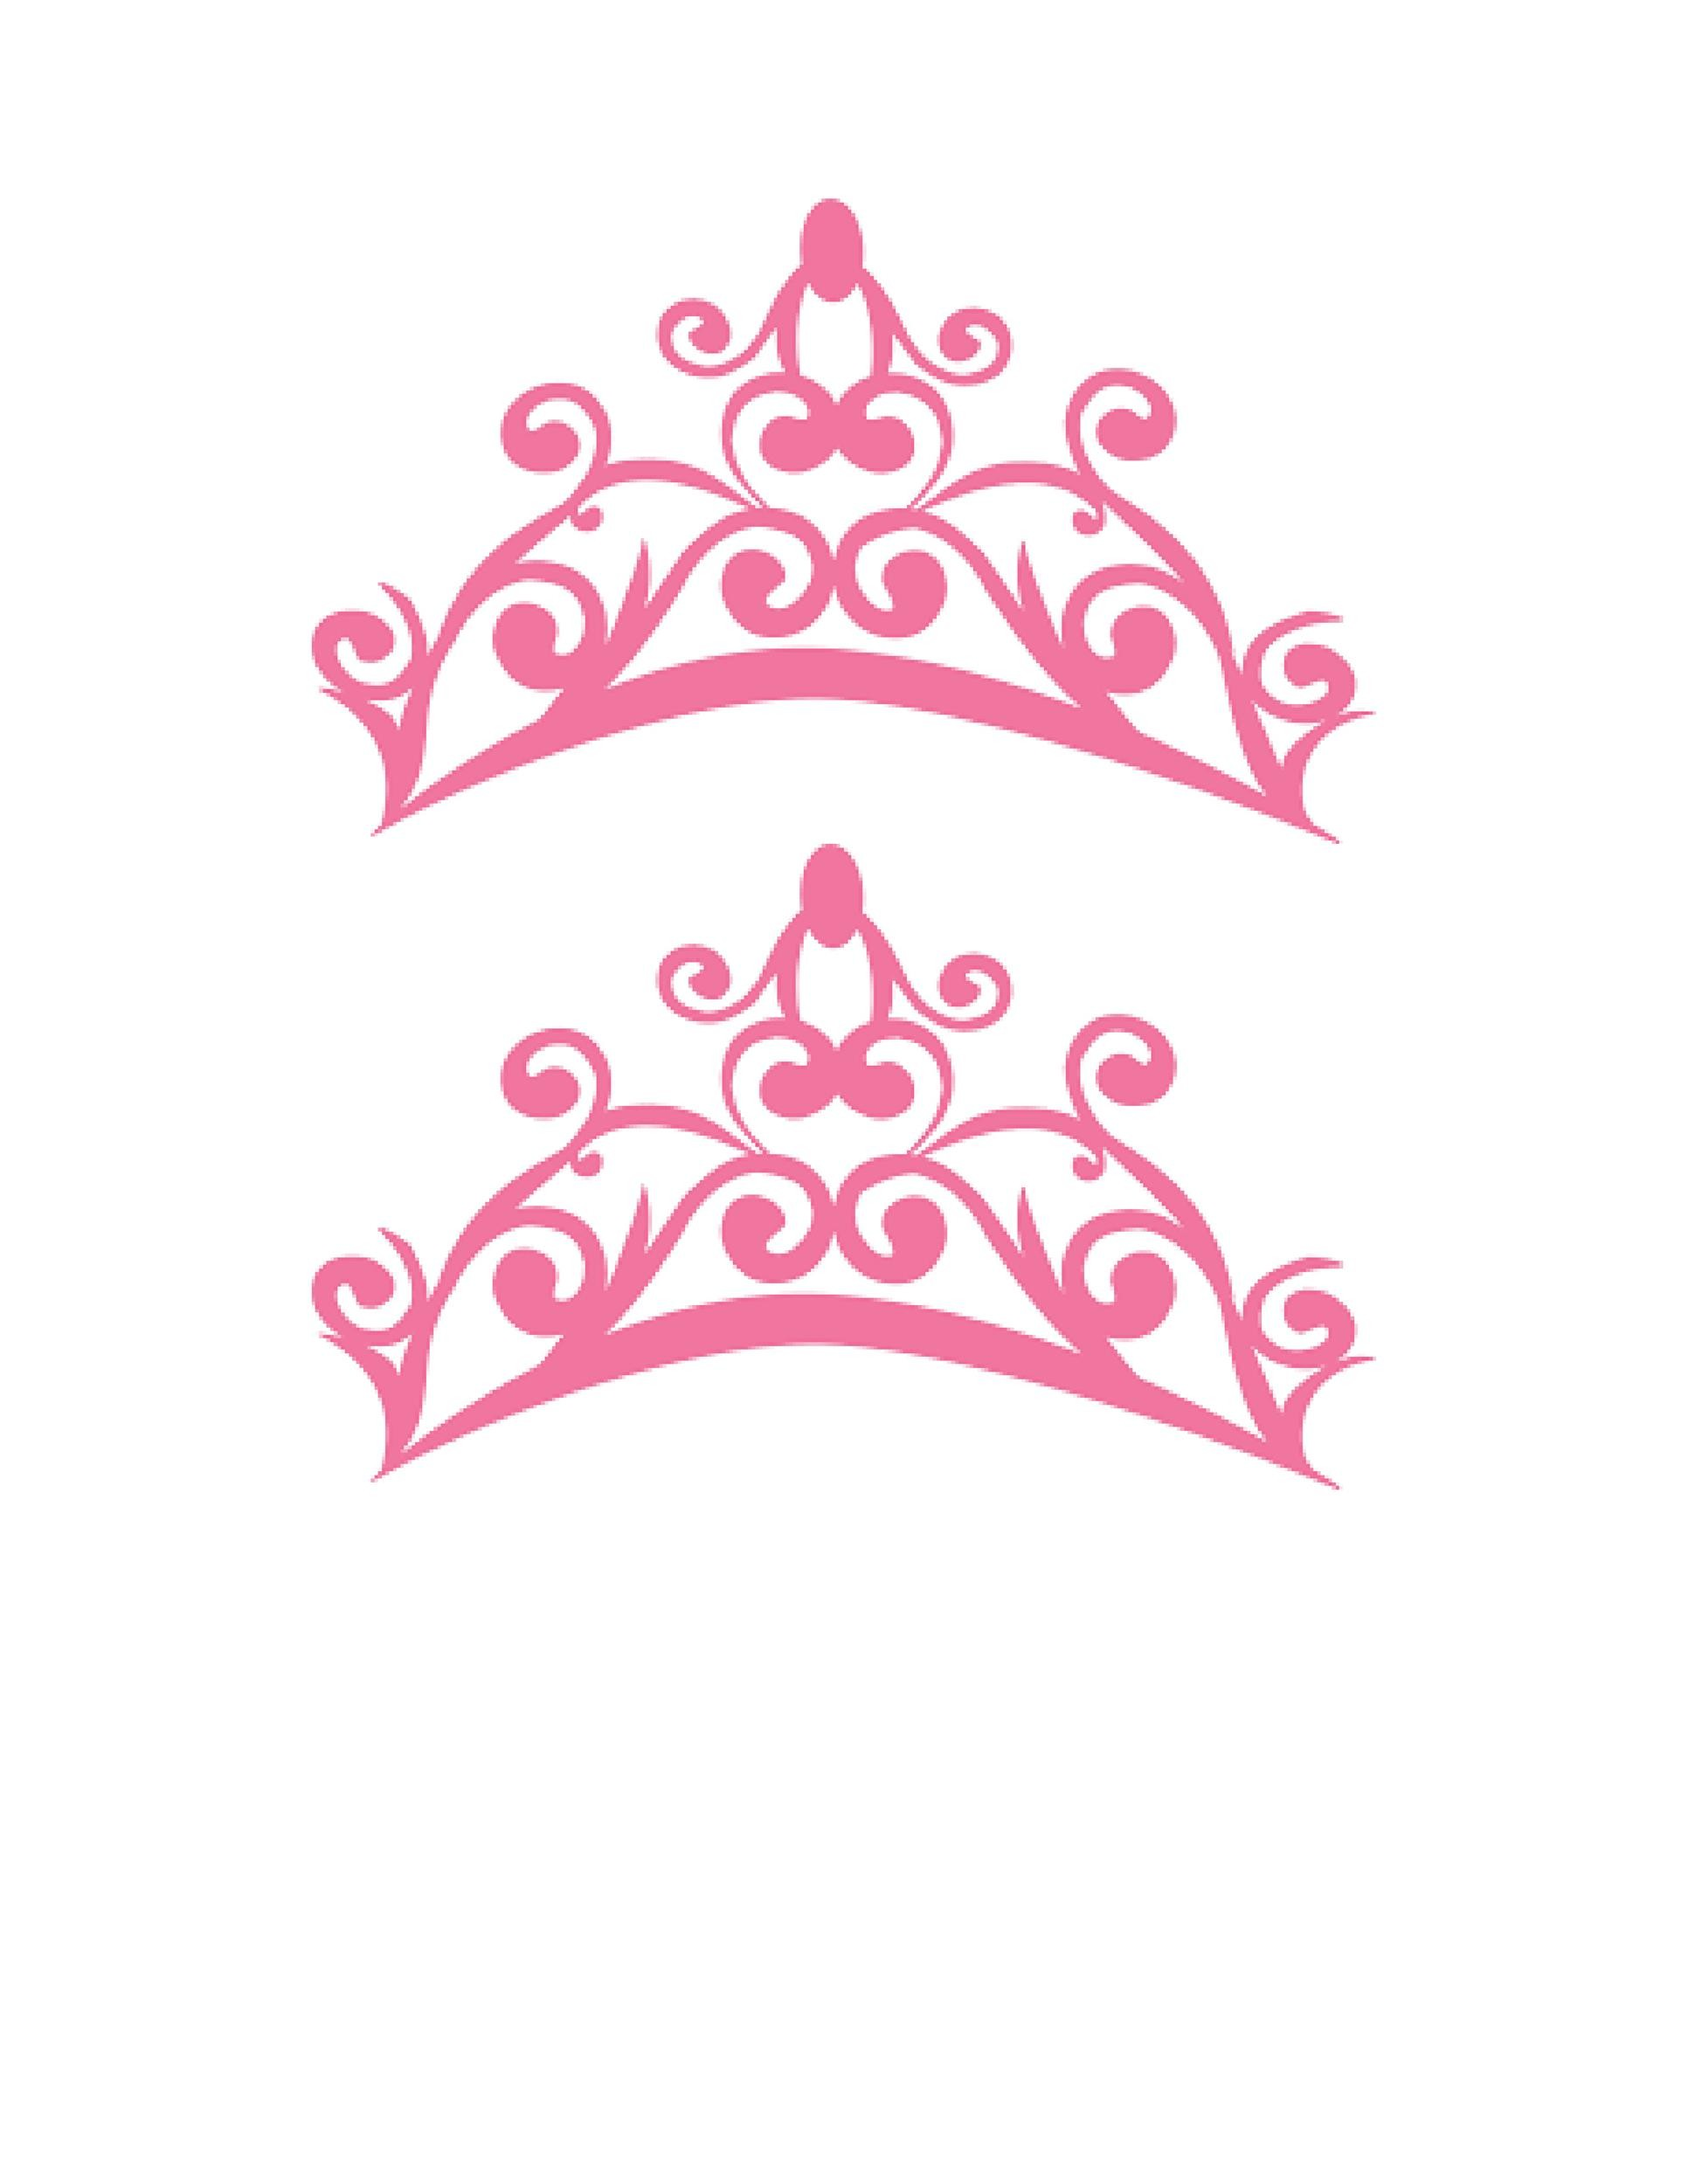 Free Crown Template 08